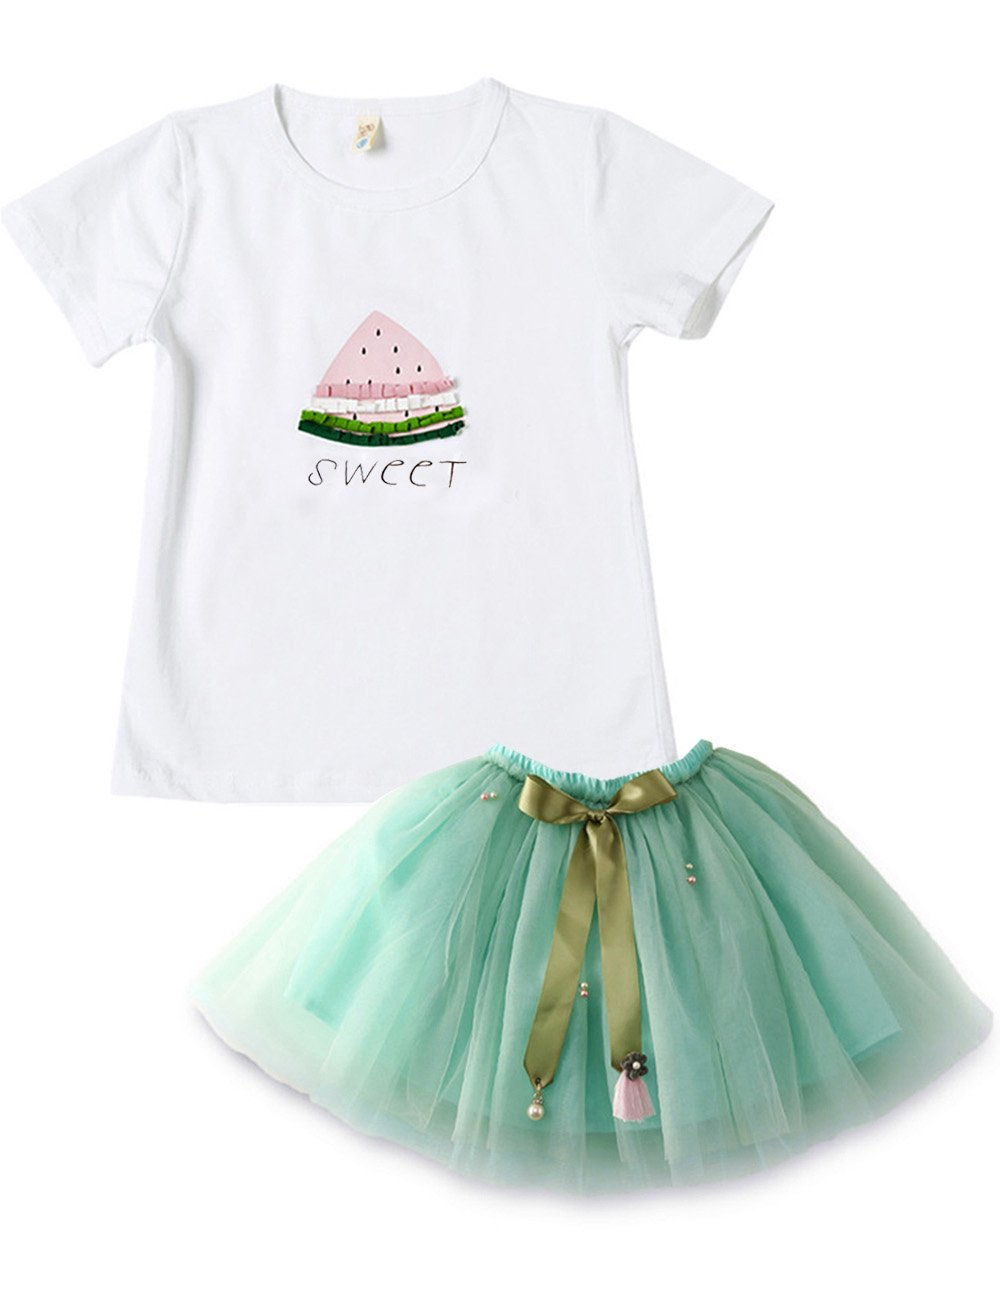 Spring&Gege Little Girls' Clothes Cute Toddler Kids Outfits, Summer Skirt Set Watermelon Print, Size 3-4 Years (Tag Size 9), Green